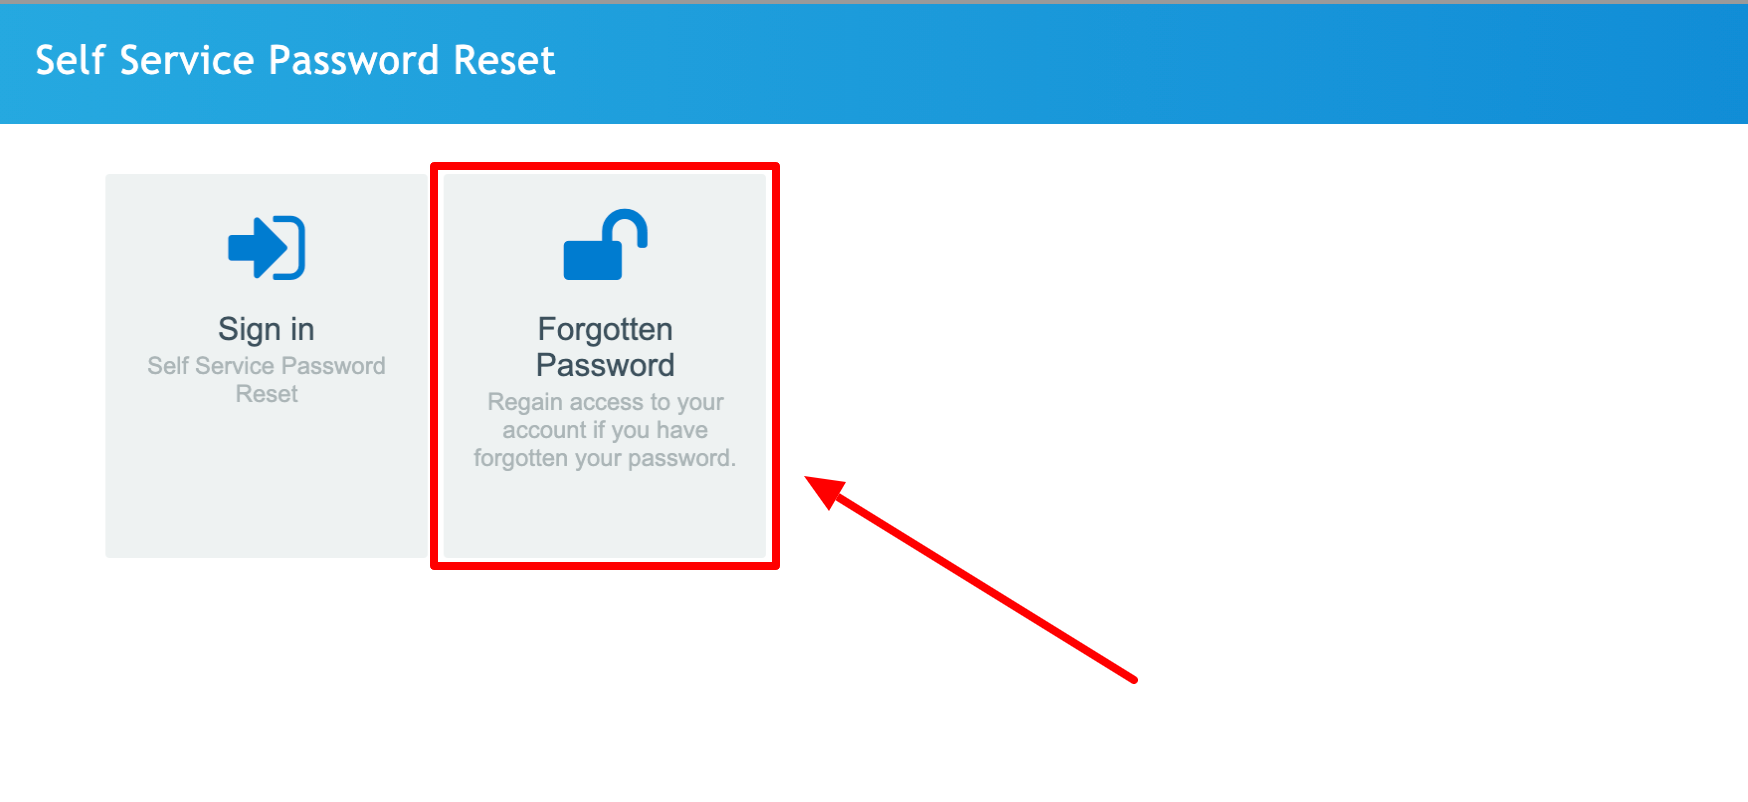 Self Service Password Reset